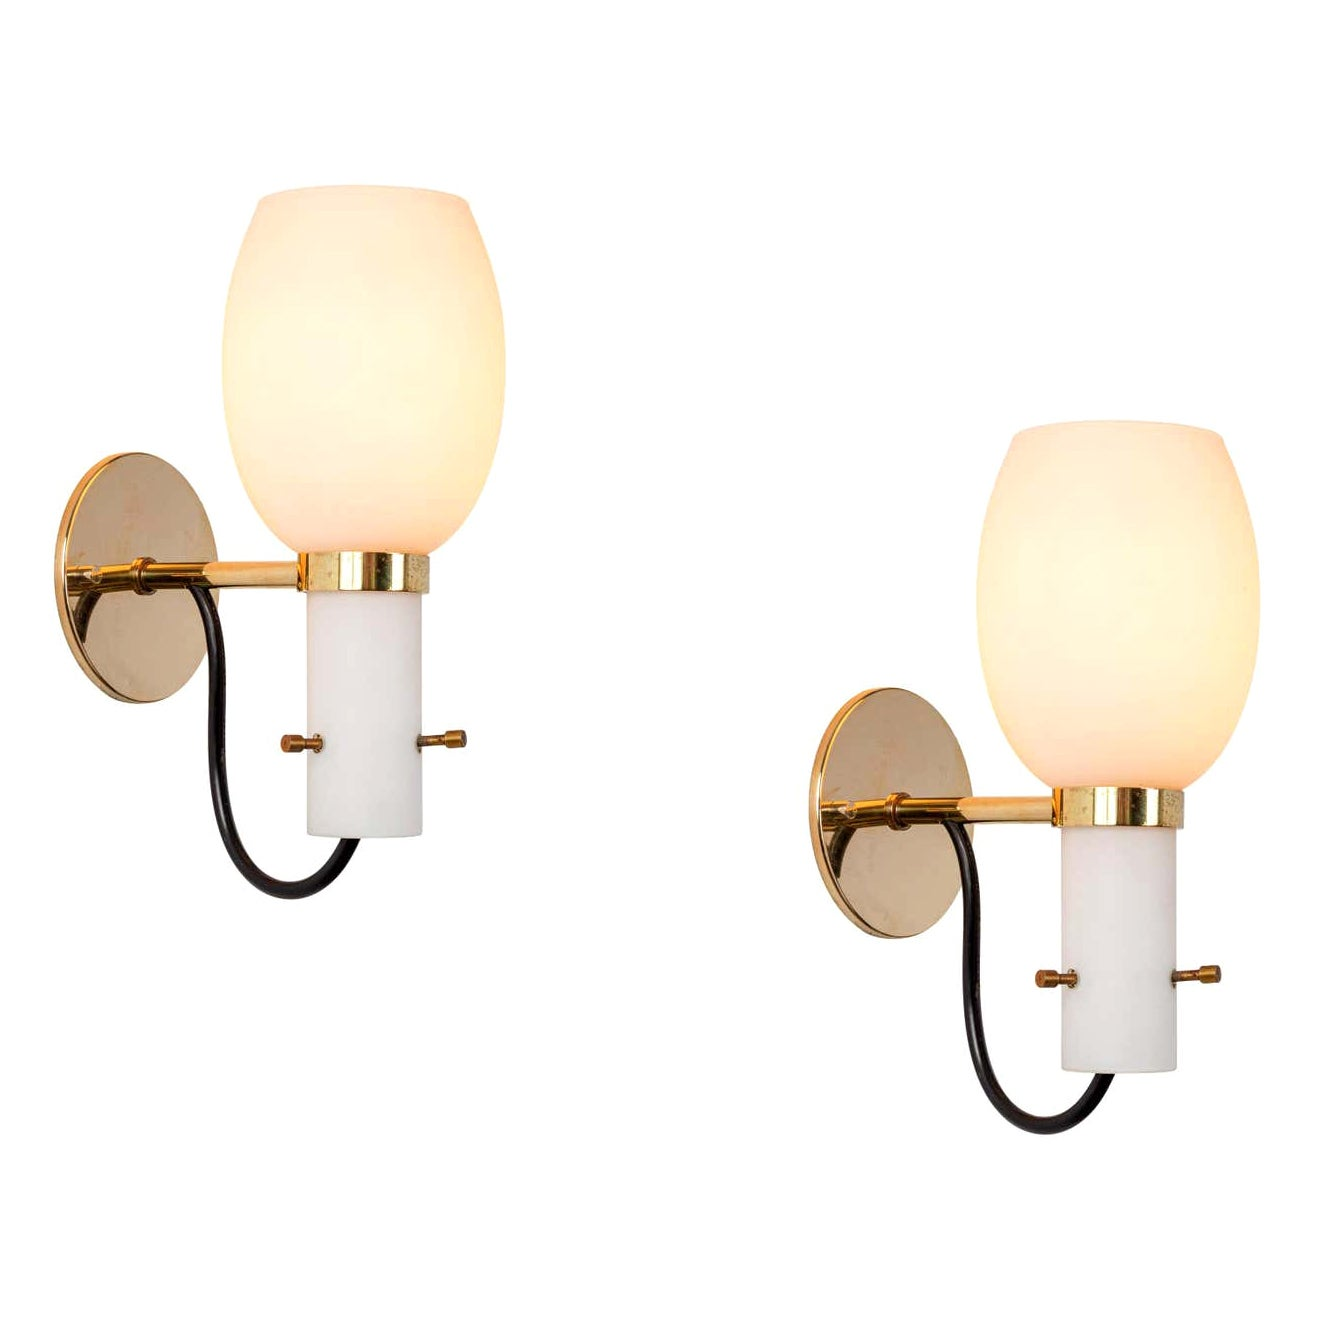 1950s Italian Brass and Glass Sconces Attributed to Stilnovo